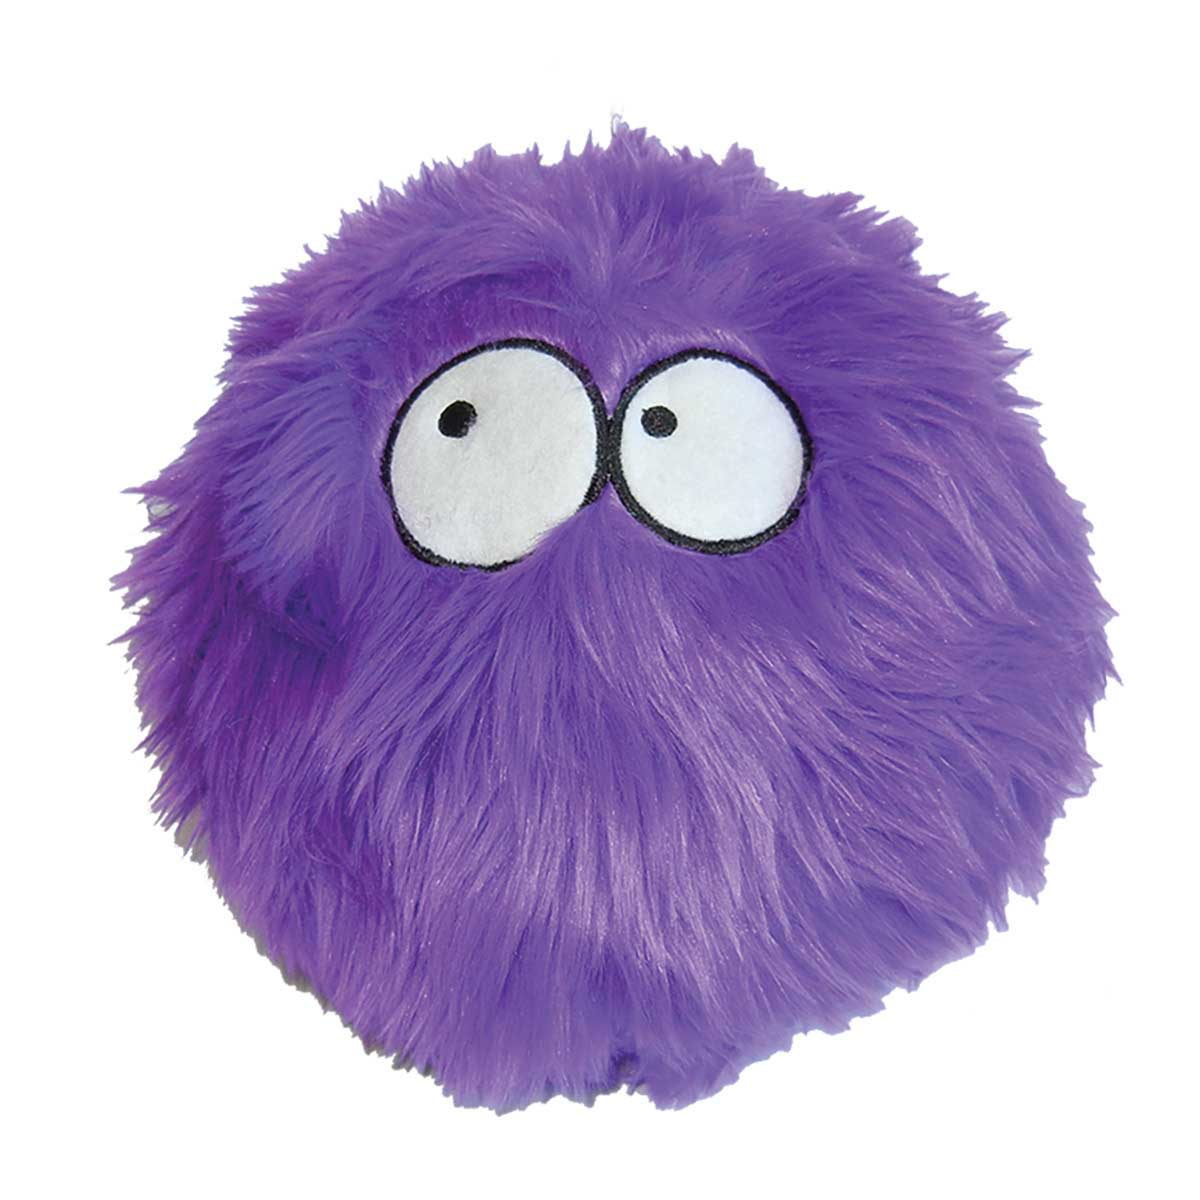 goDog Small Purple Furballz Dog Toy 4.5 inch